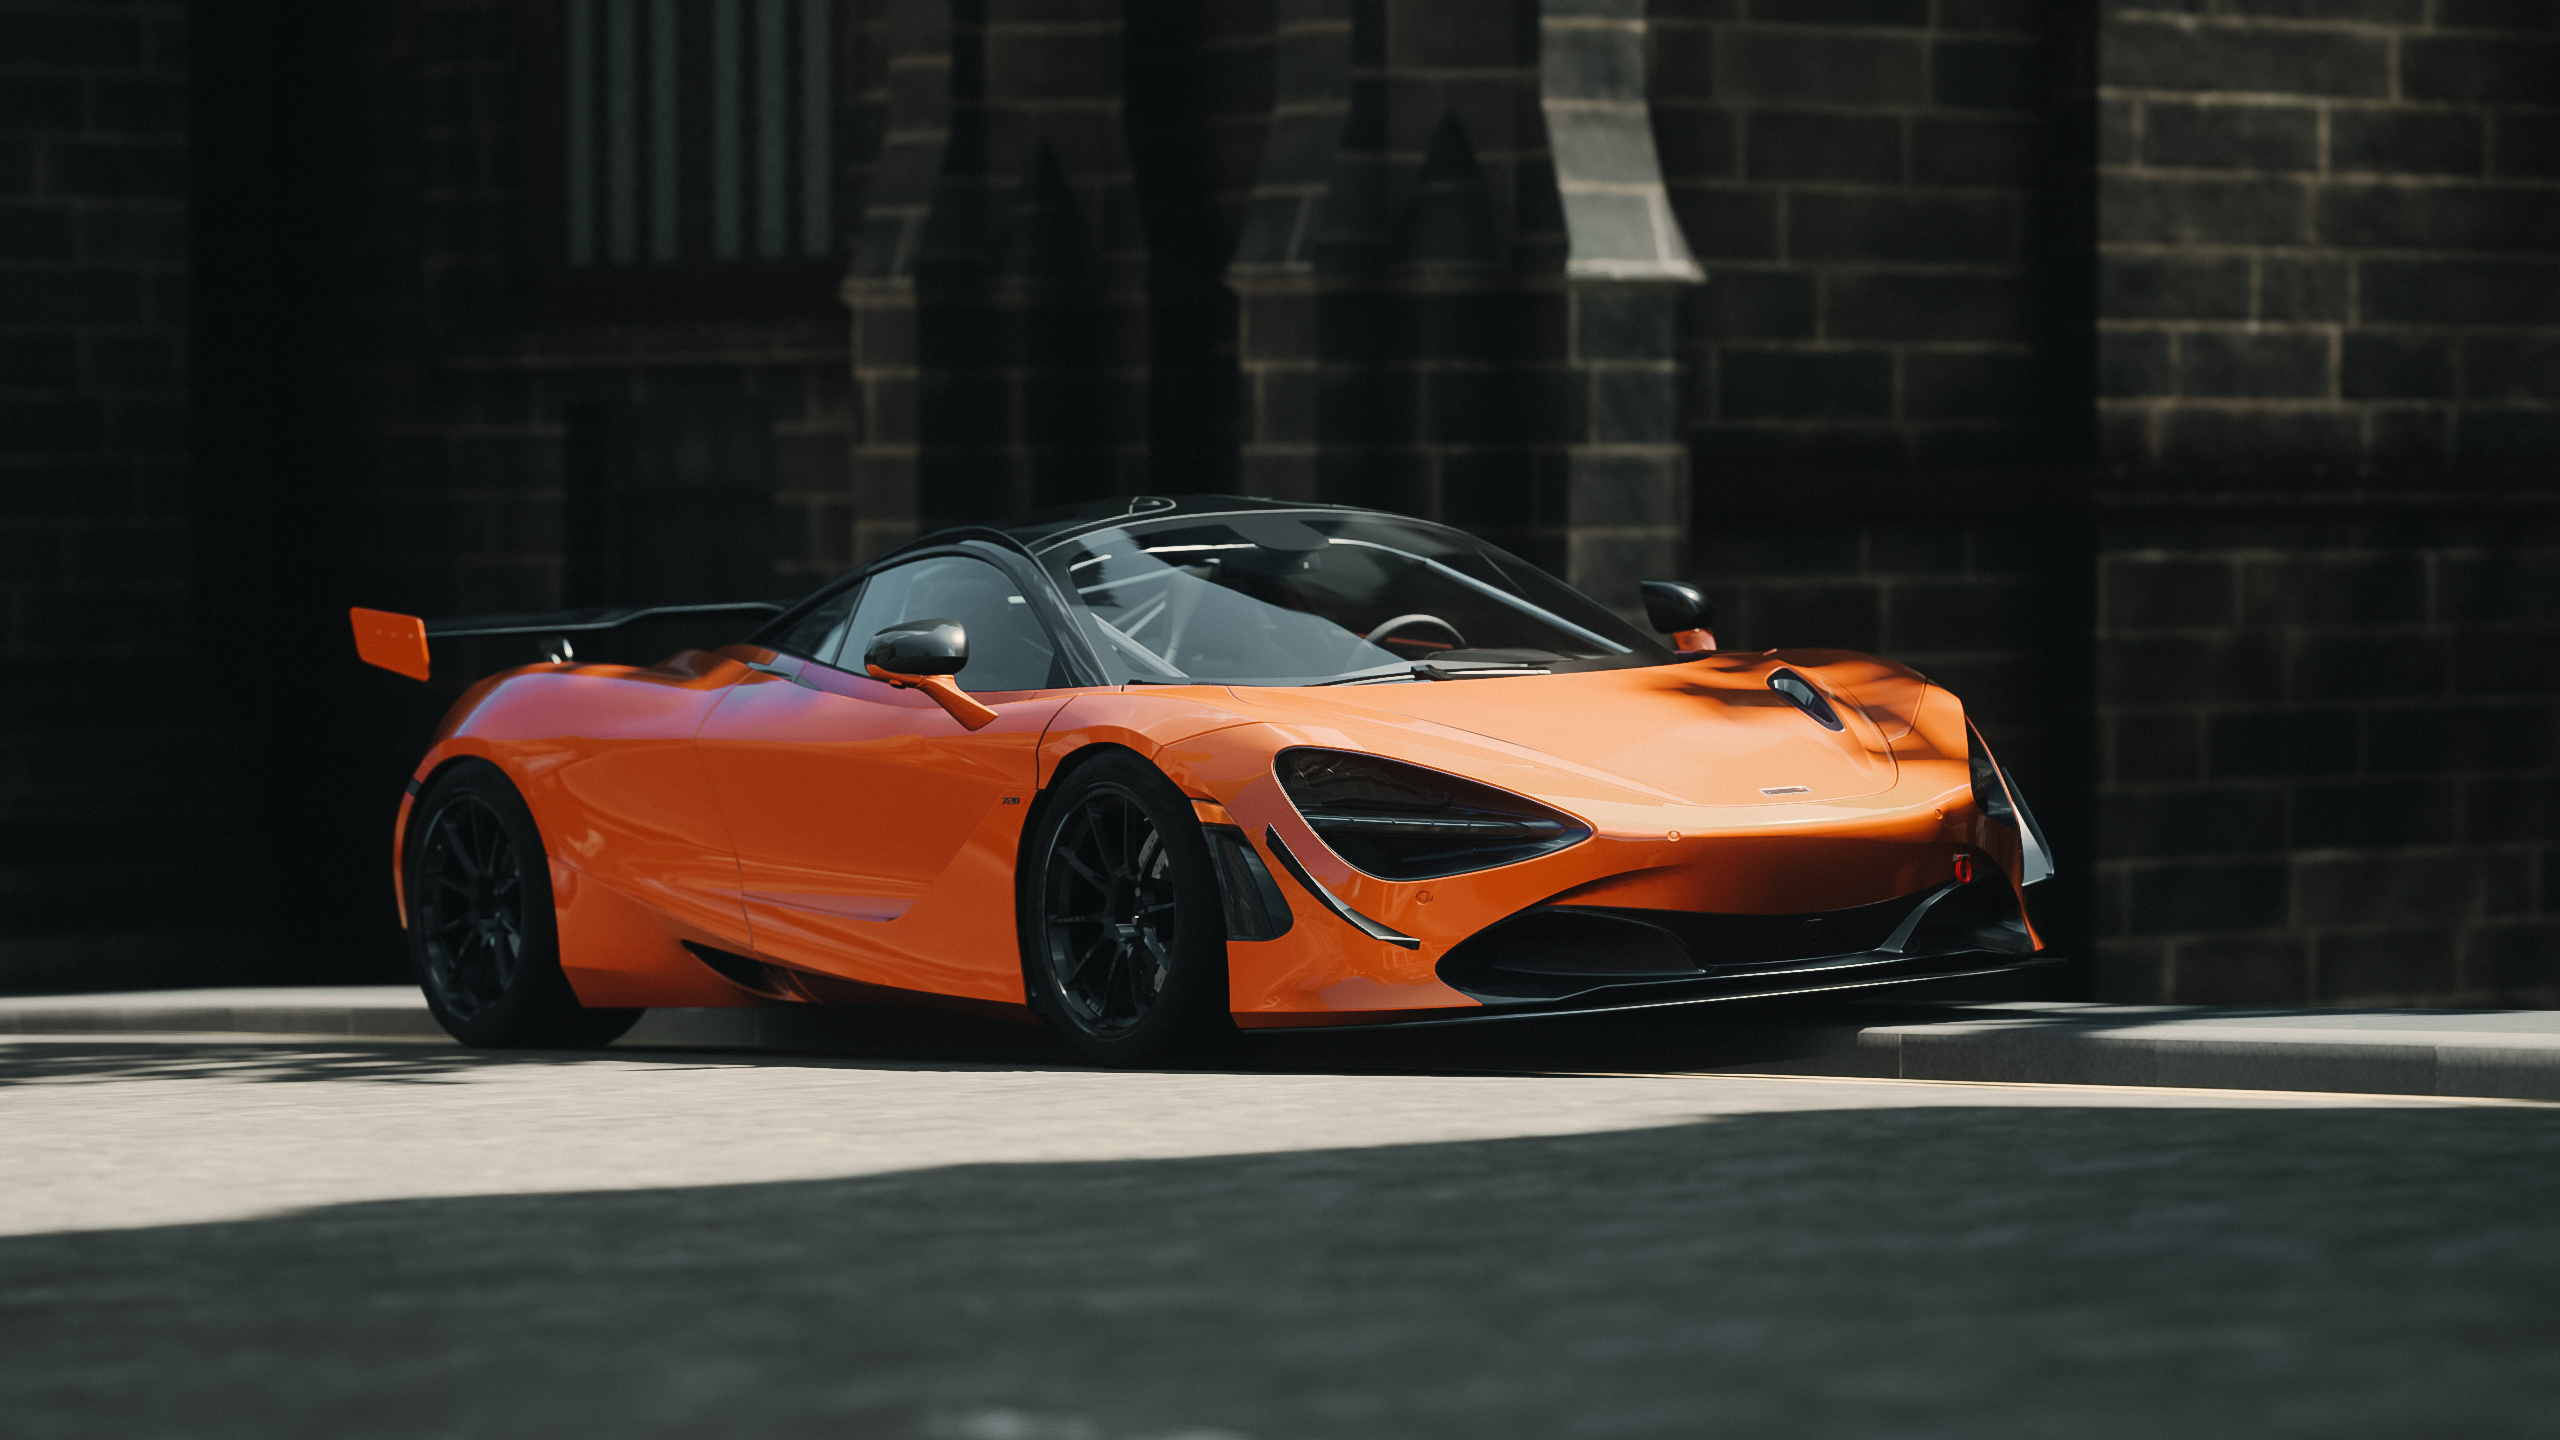 forza horizon 4 forza forza horizon forza games video games